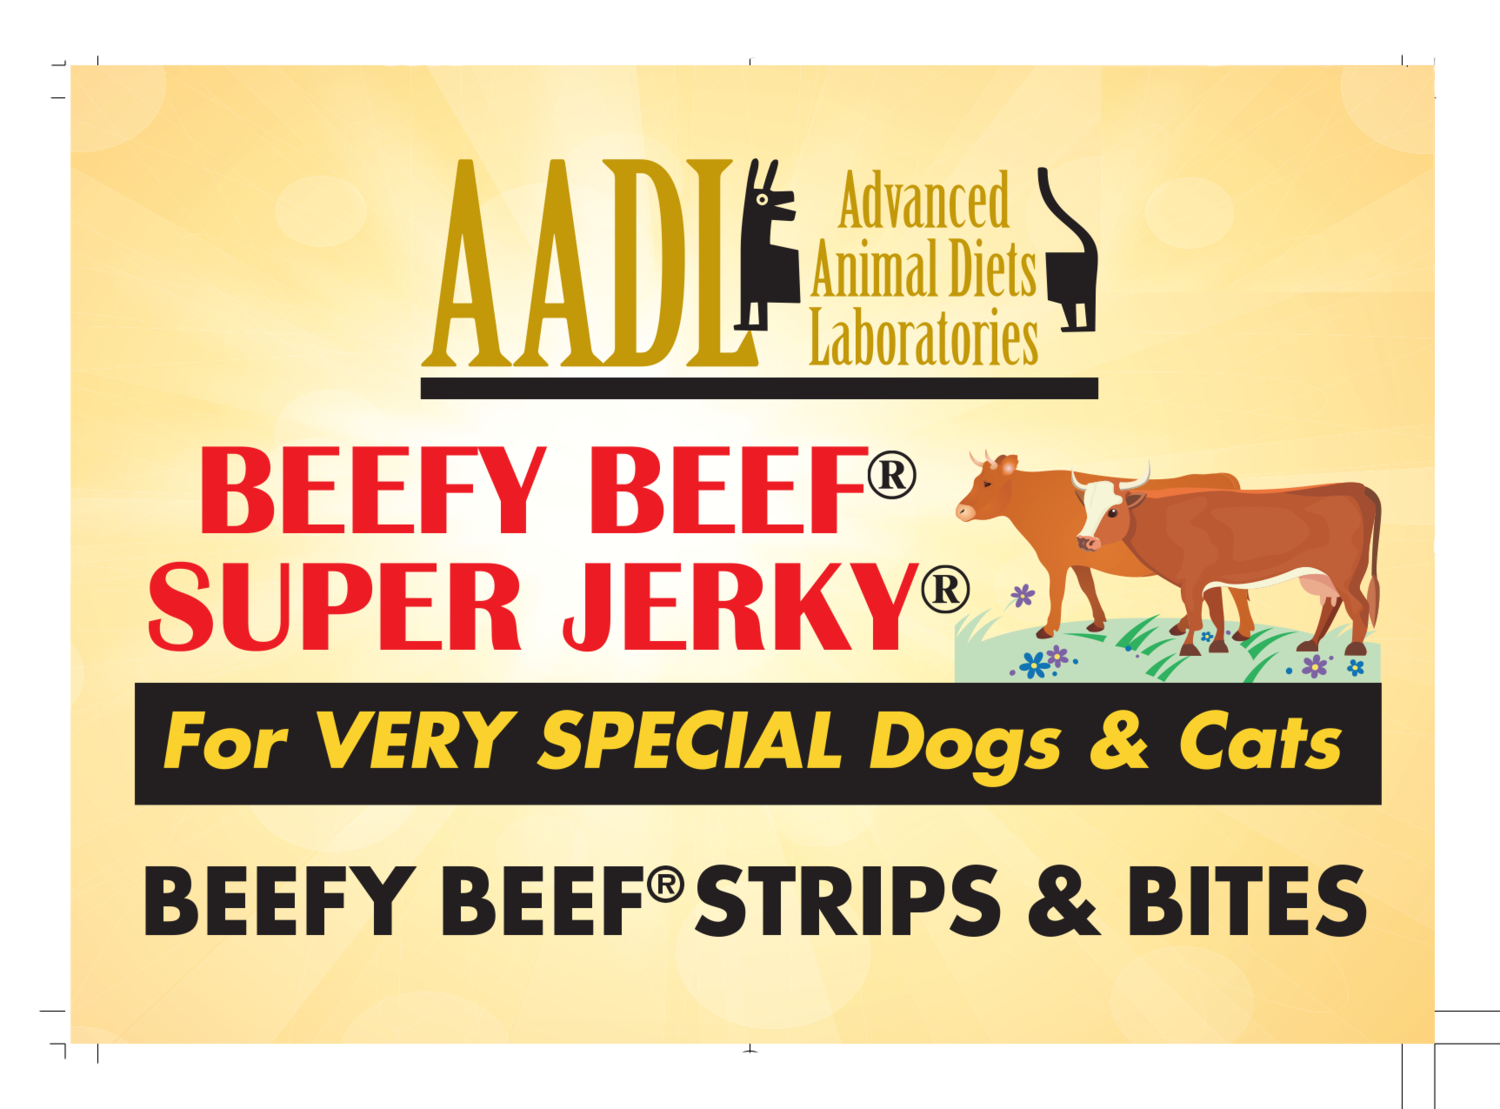 Beefy Beef® SuperJerky® Beefy Beef Strips & Bites for Very Special Dogs & Cats